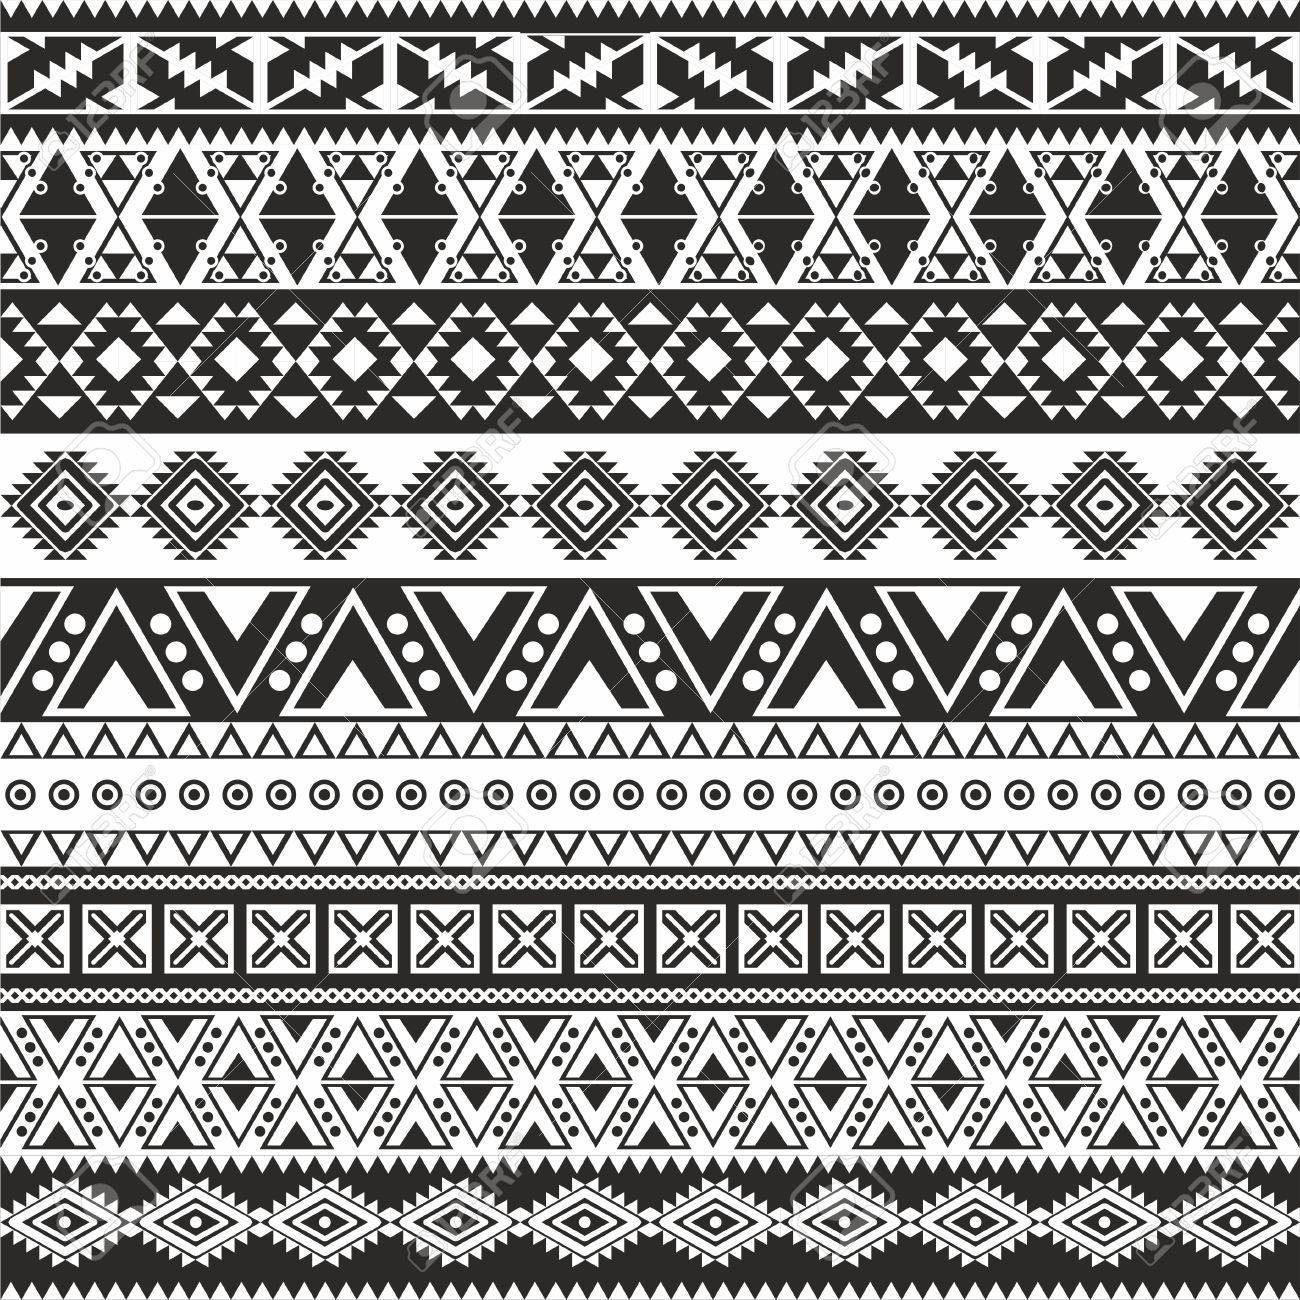 Background geometric mexican patterns seamless vector zigzag maya - Tribal Seamless Pattern Aztec Black And White Background Stock Vector 21504586